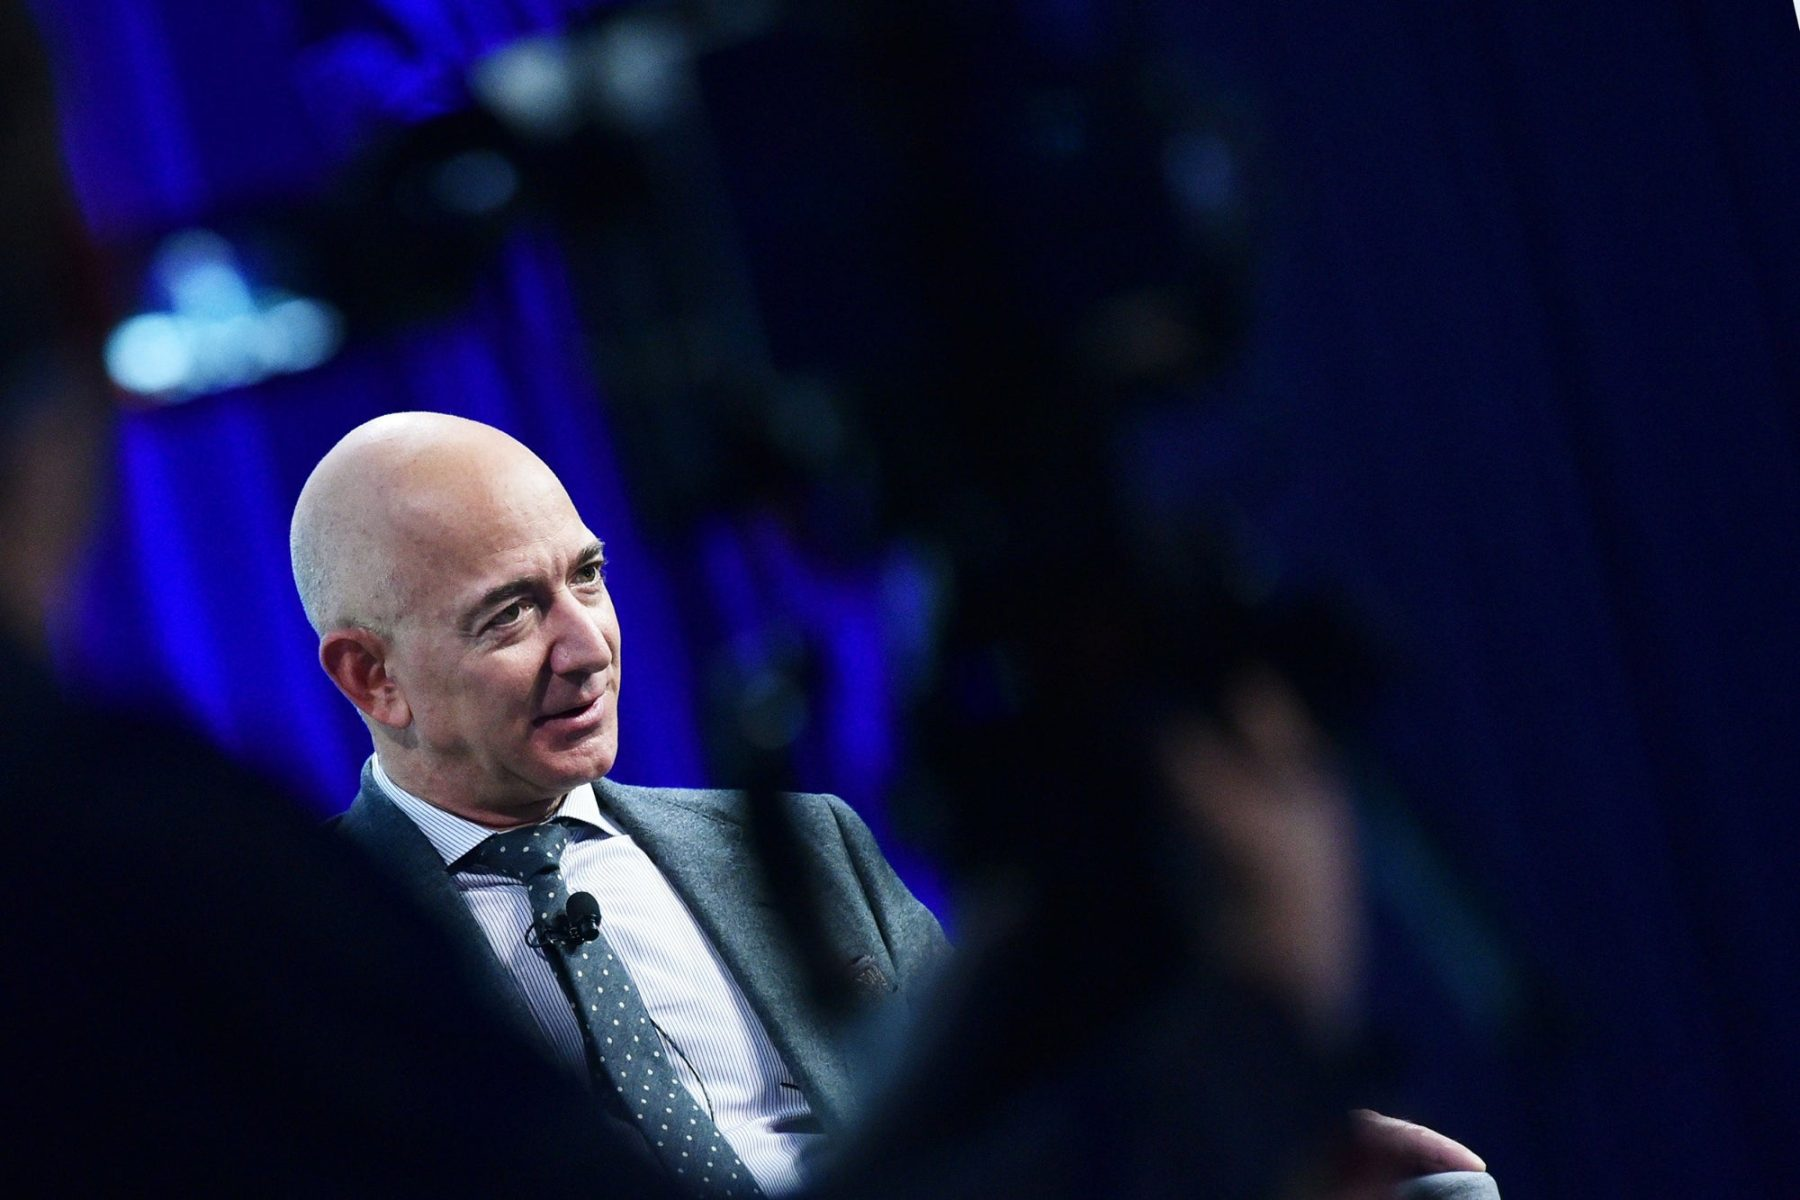 bezos-takes-space-battle-against-musk-to-court,-musk-slams-bezos'-technology:-'the-first-thing-you'd-want-to-do-is-cancel-it'